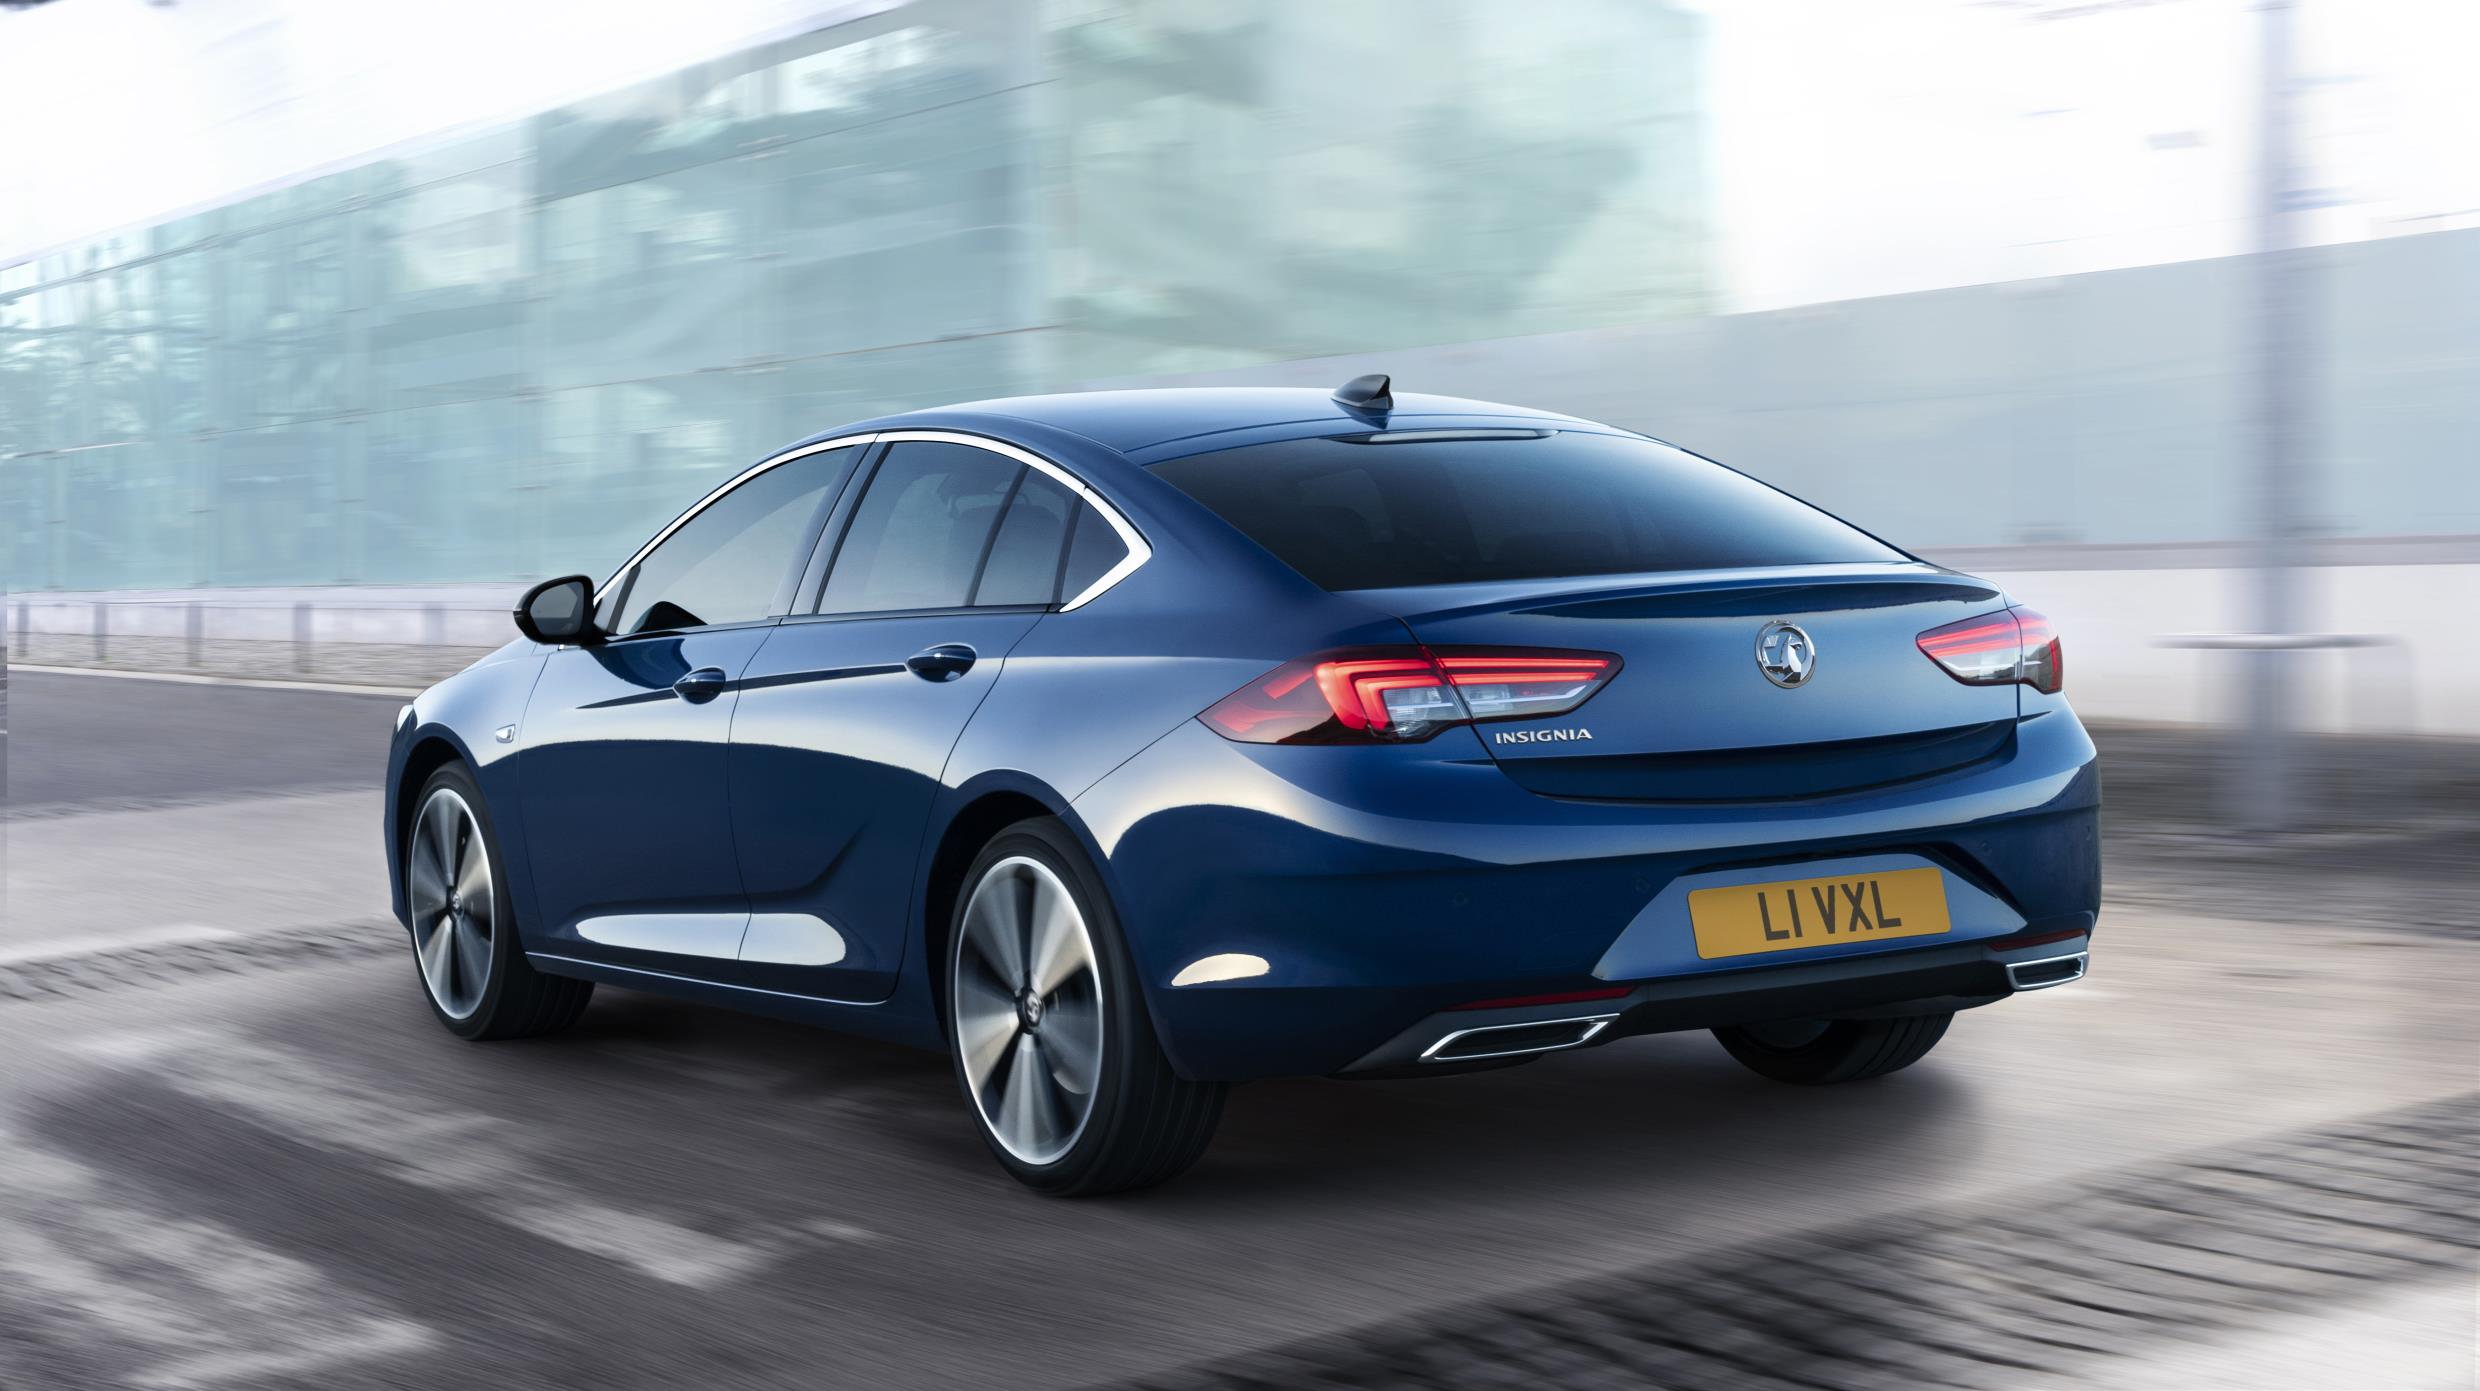 The Insignia revises a popular car for Vauxhall